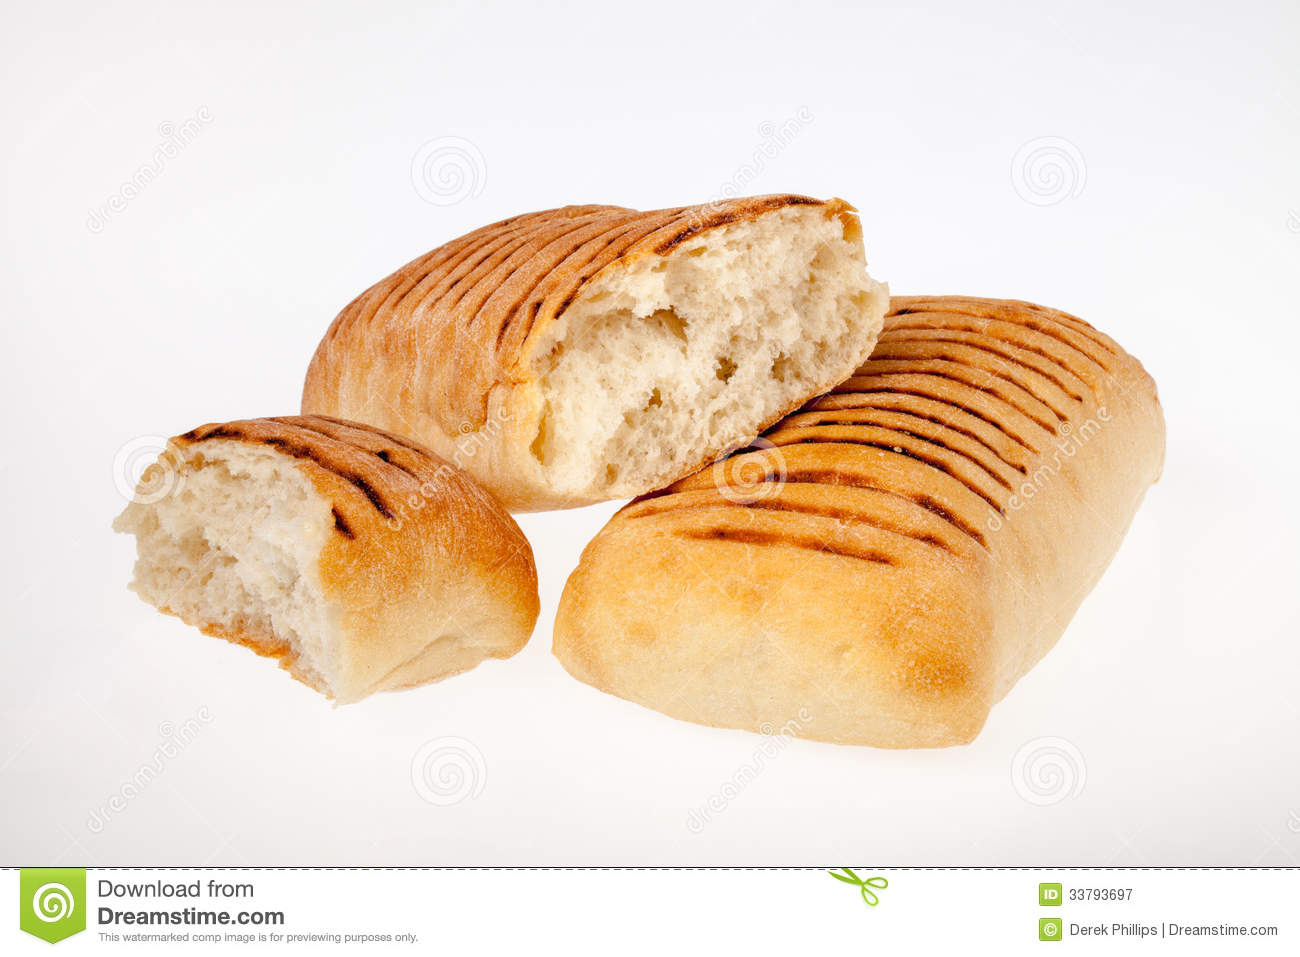 Panini bread rolls lit evenly on white background ideal for use in ...